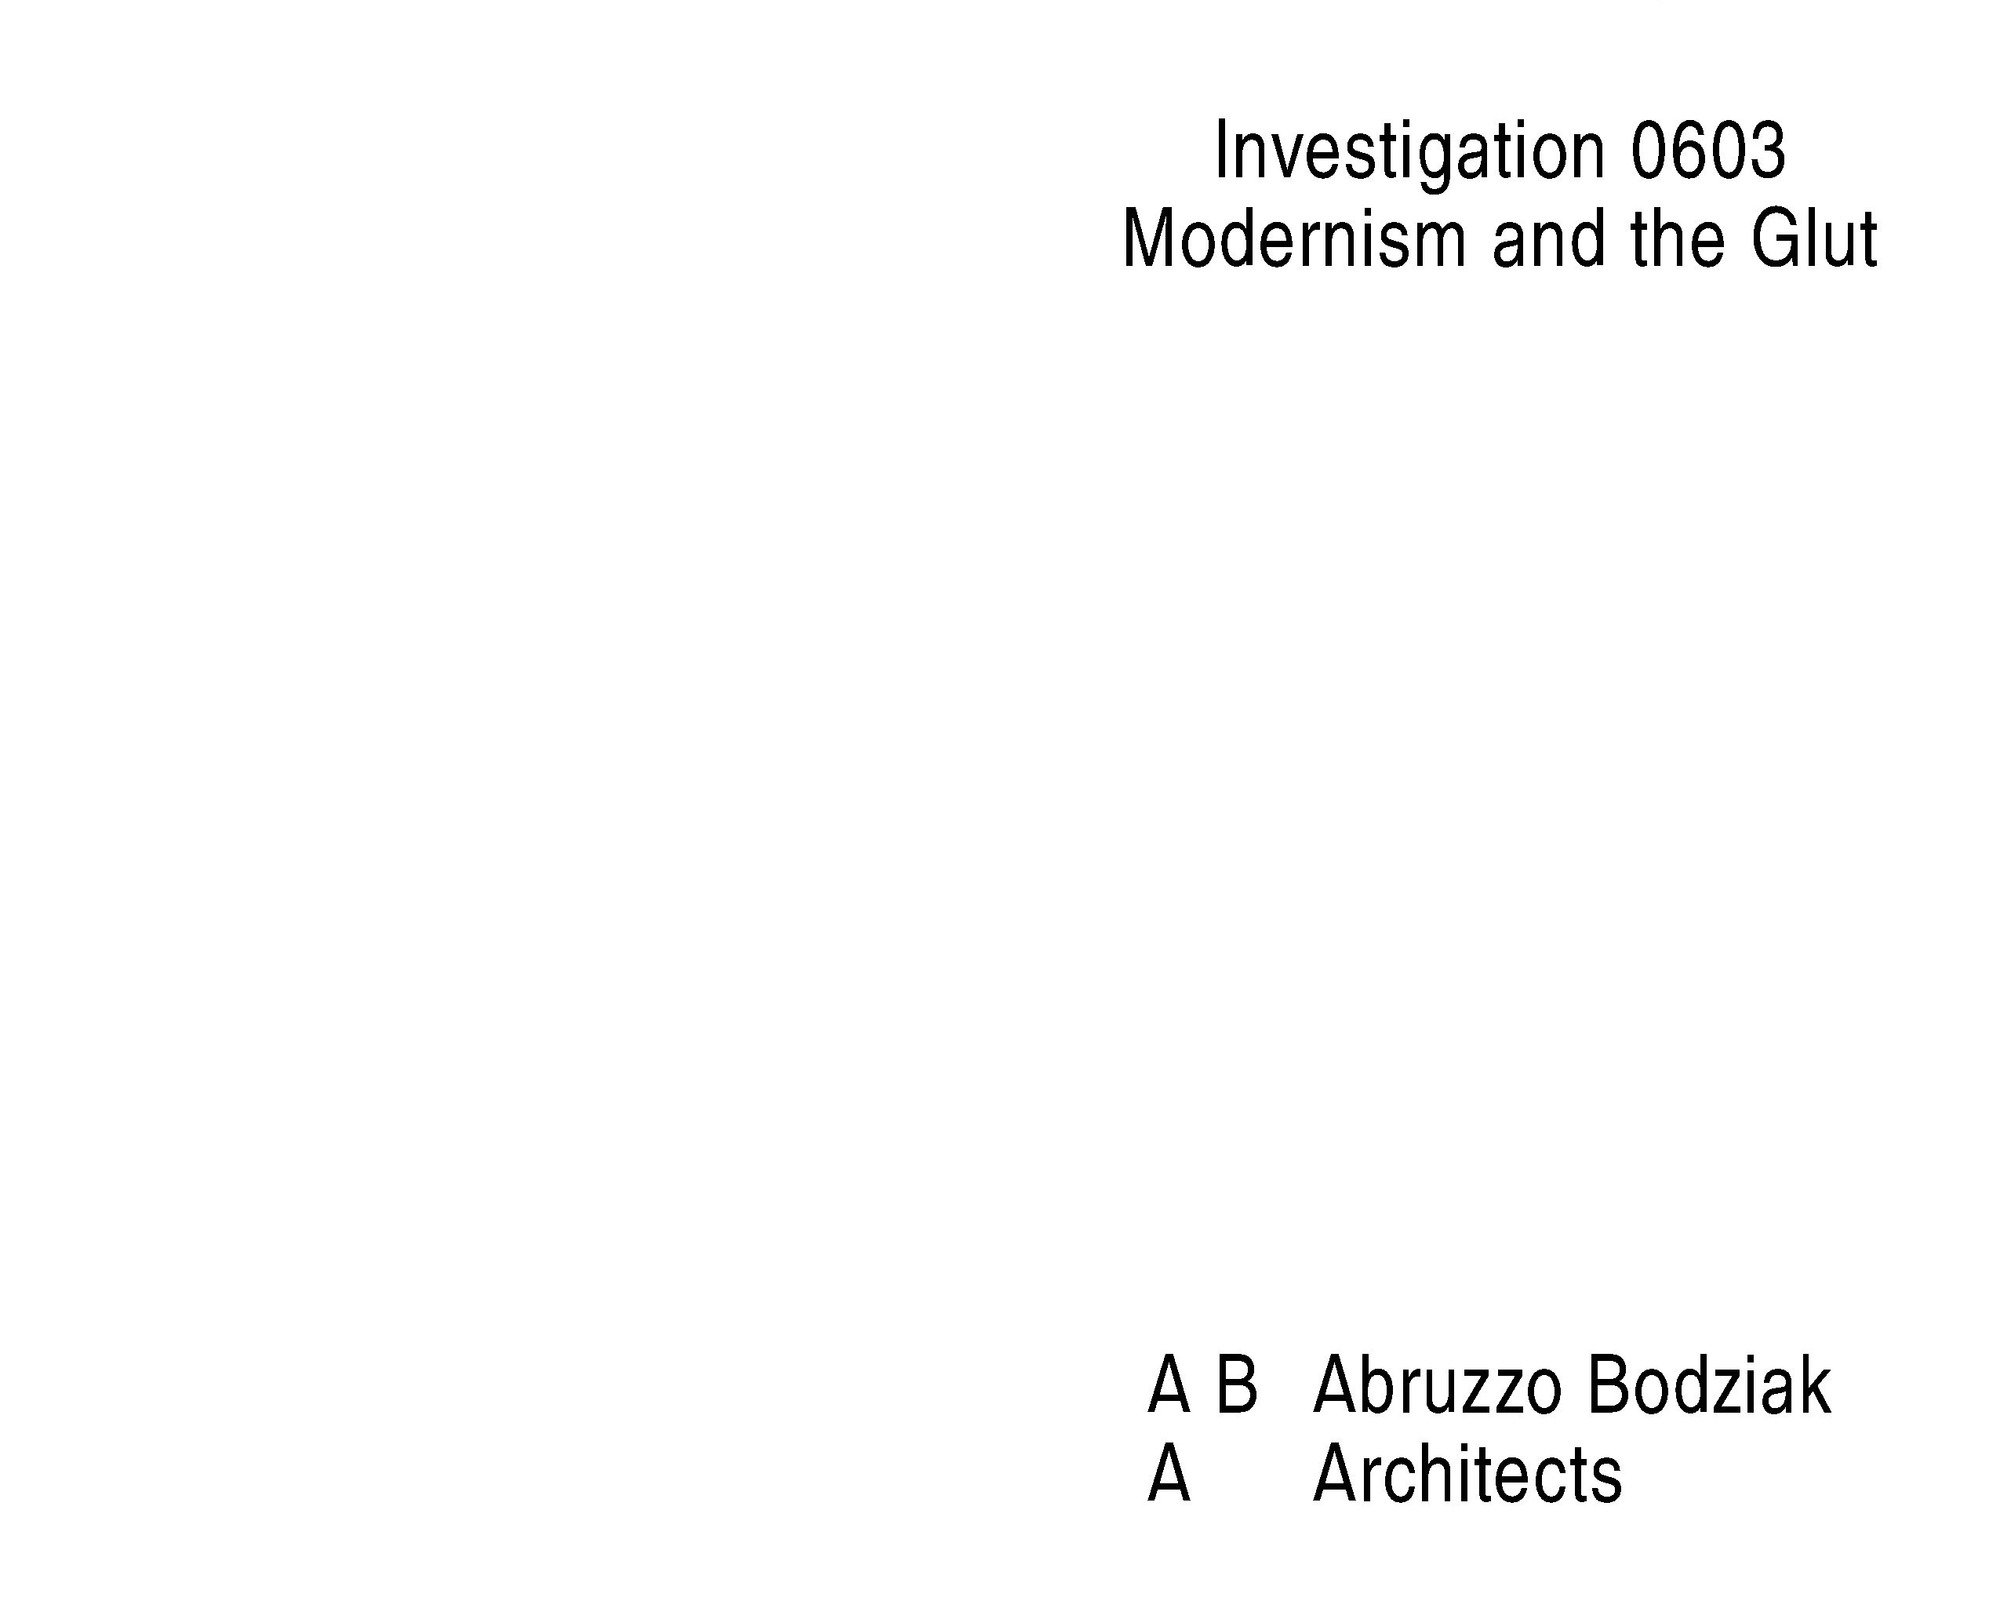 0603 modernism and the glut investigation page 02 2000 xxx q85